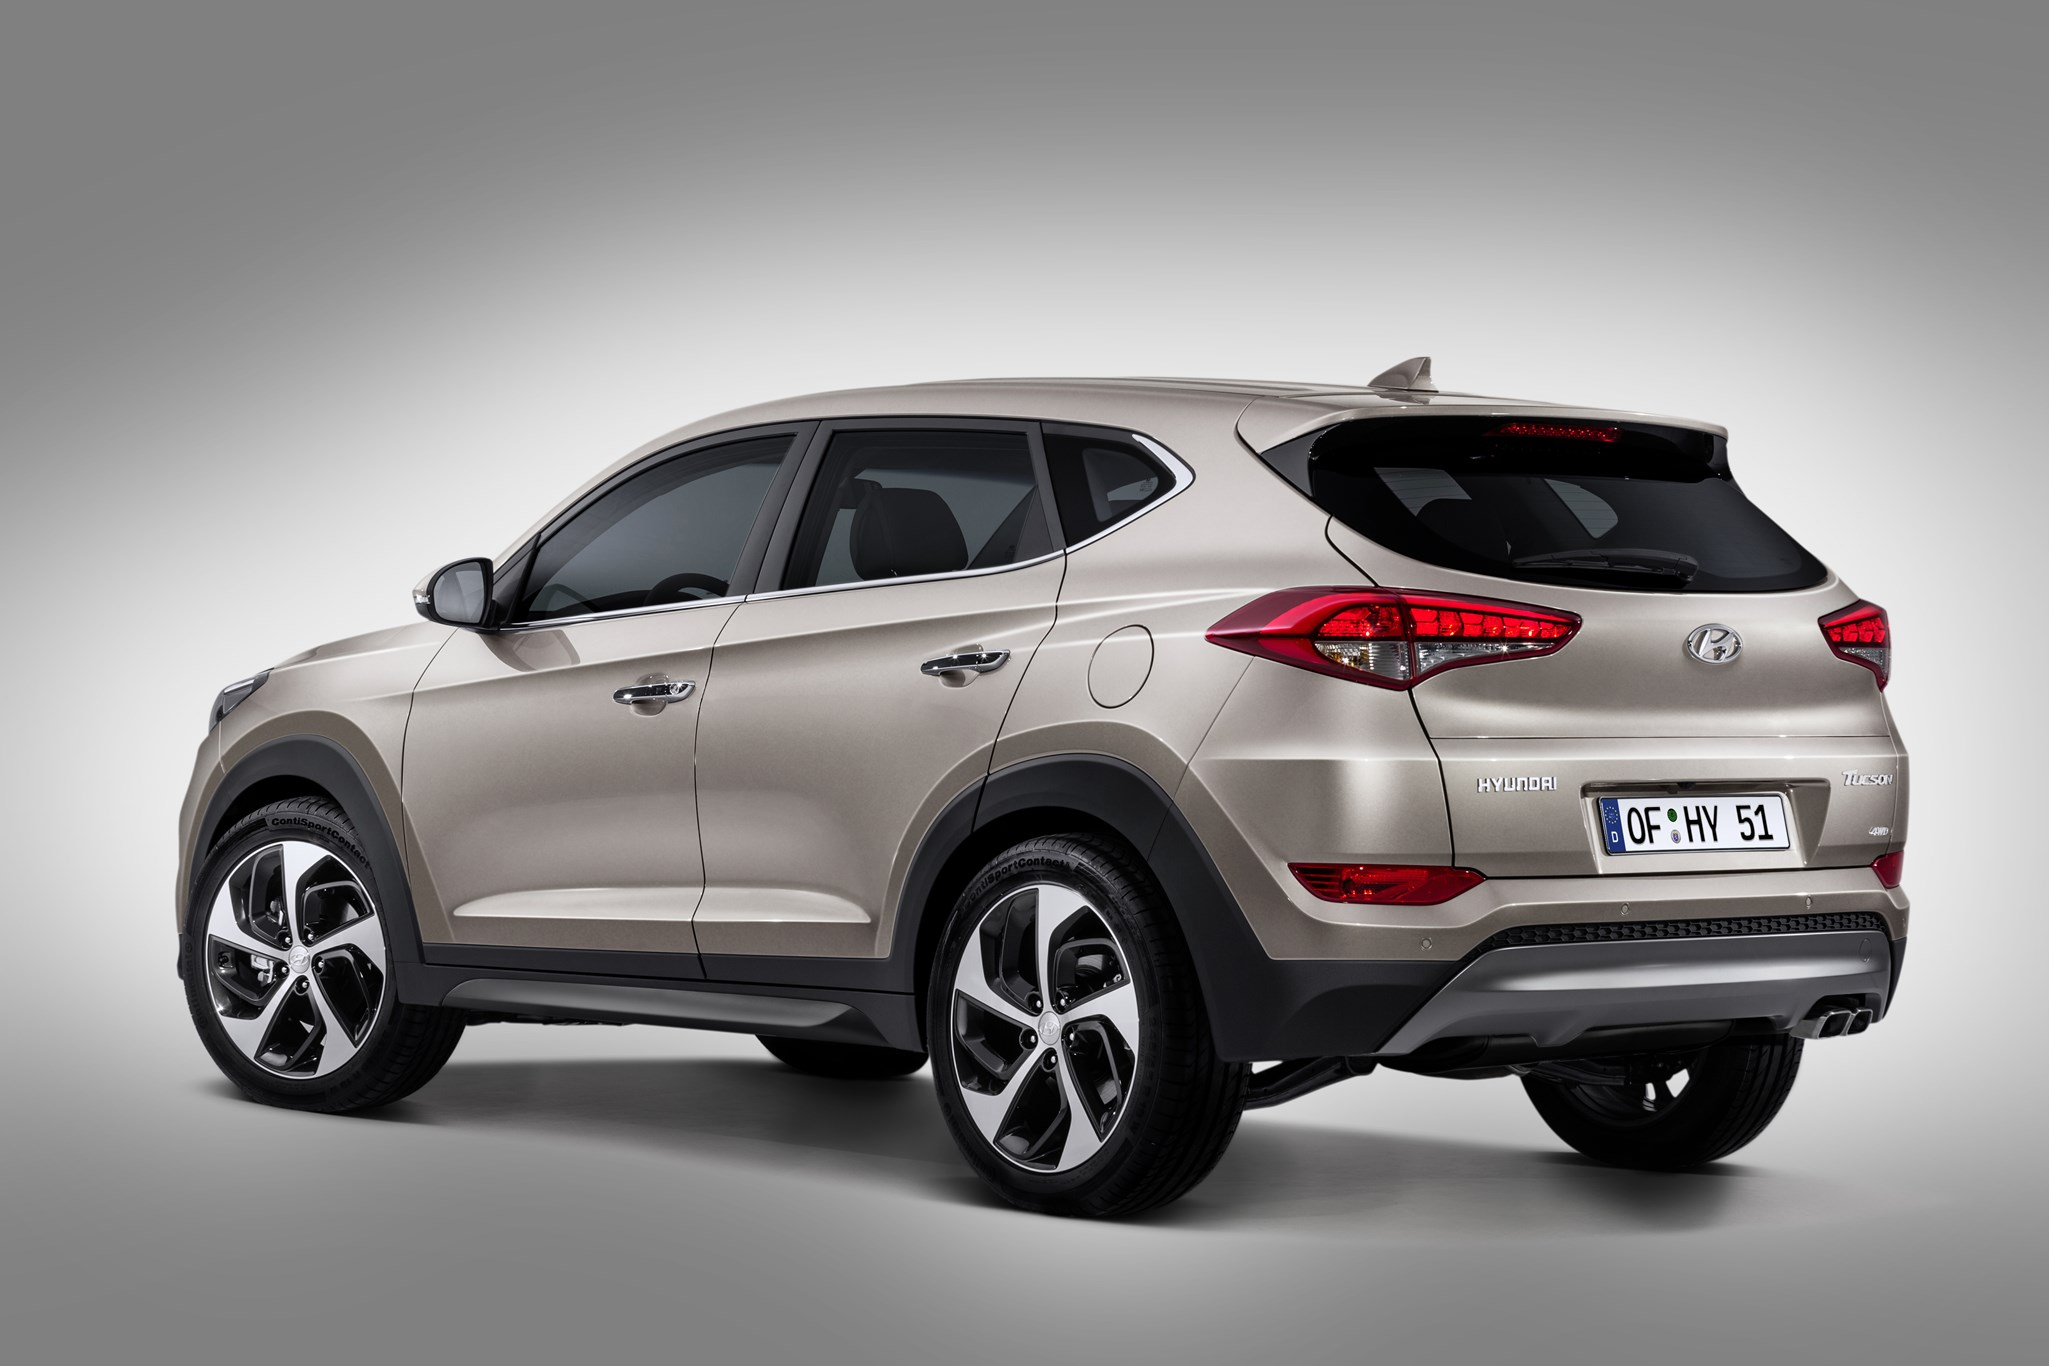 Hyundai Tucson Is Here To Challenge Qashqai Dominance By